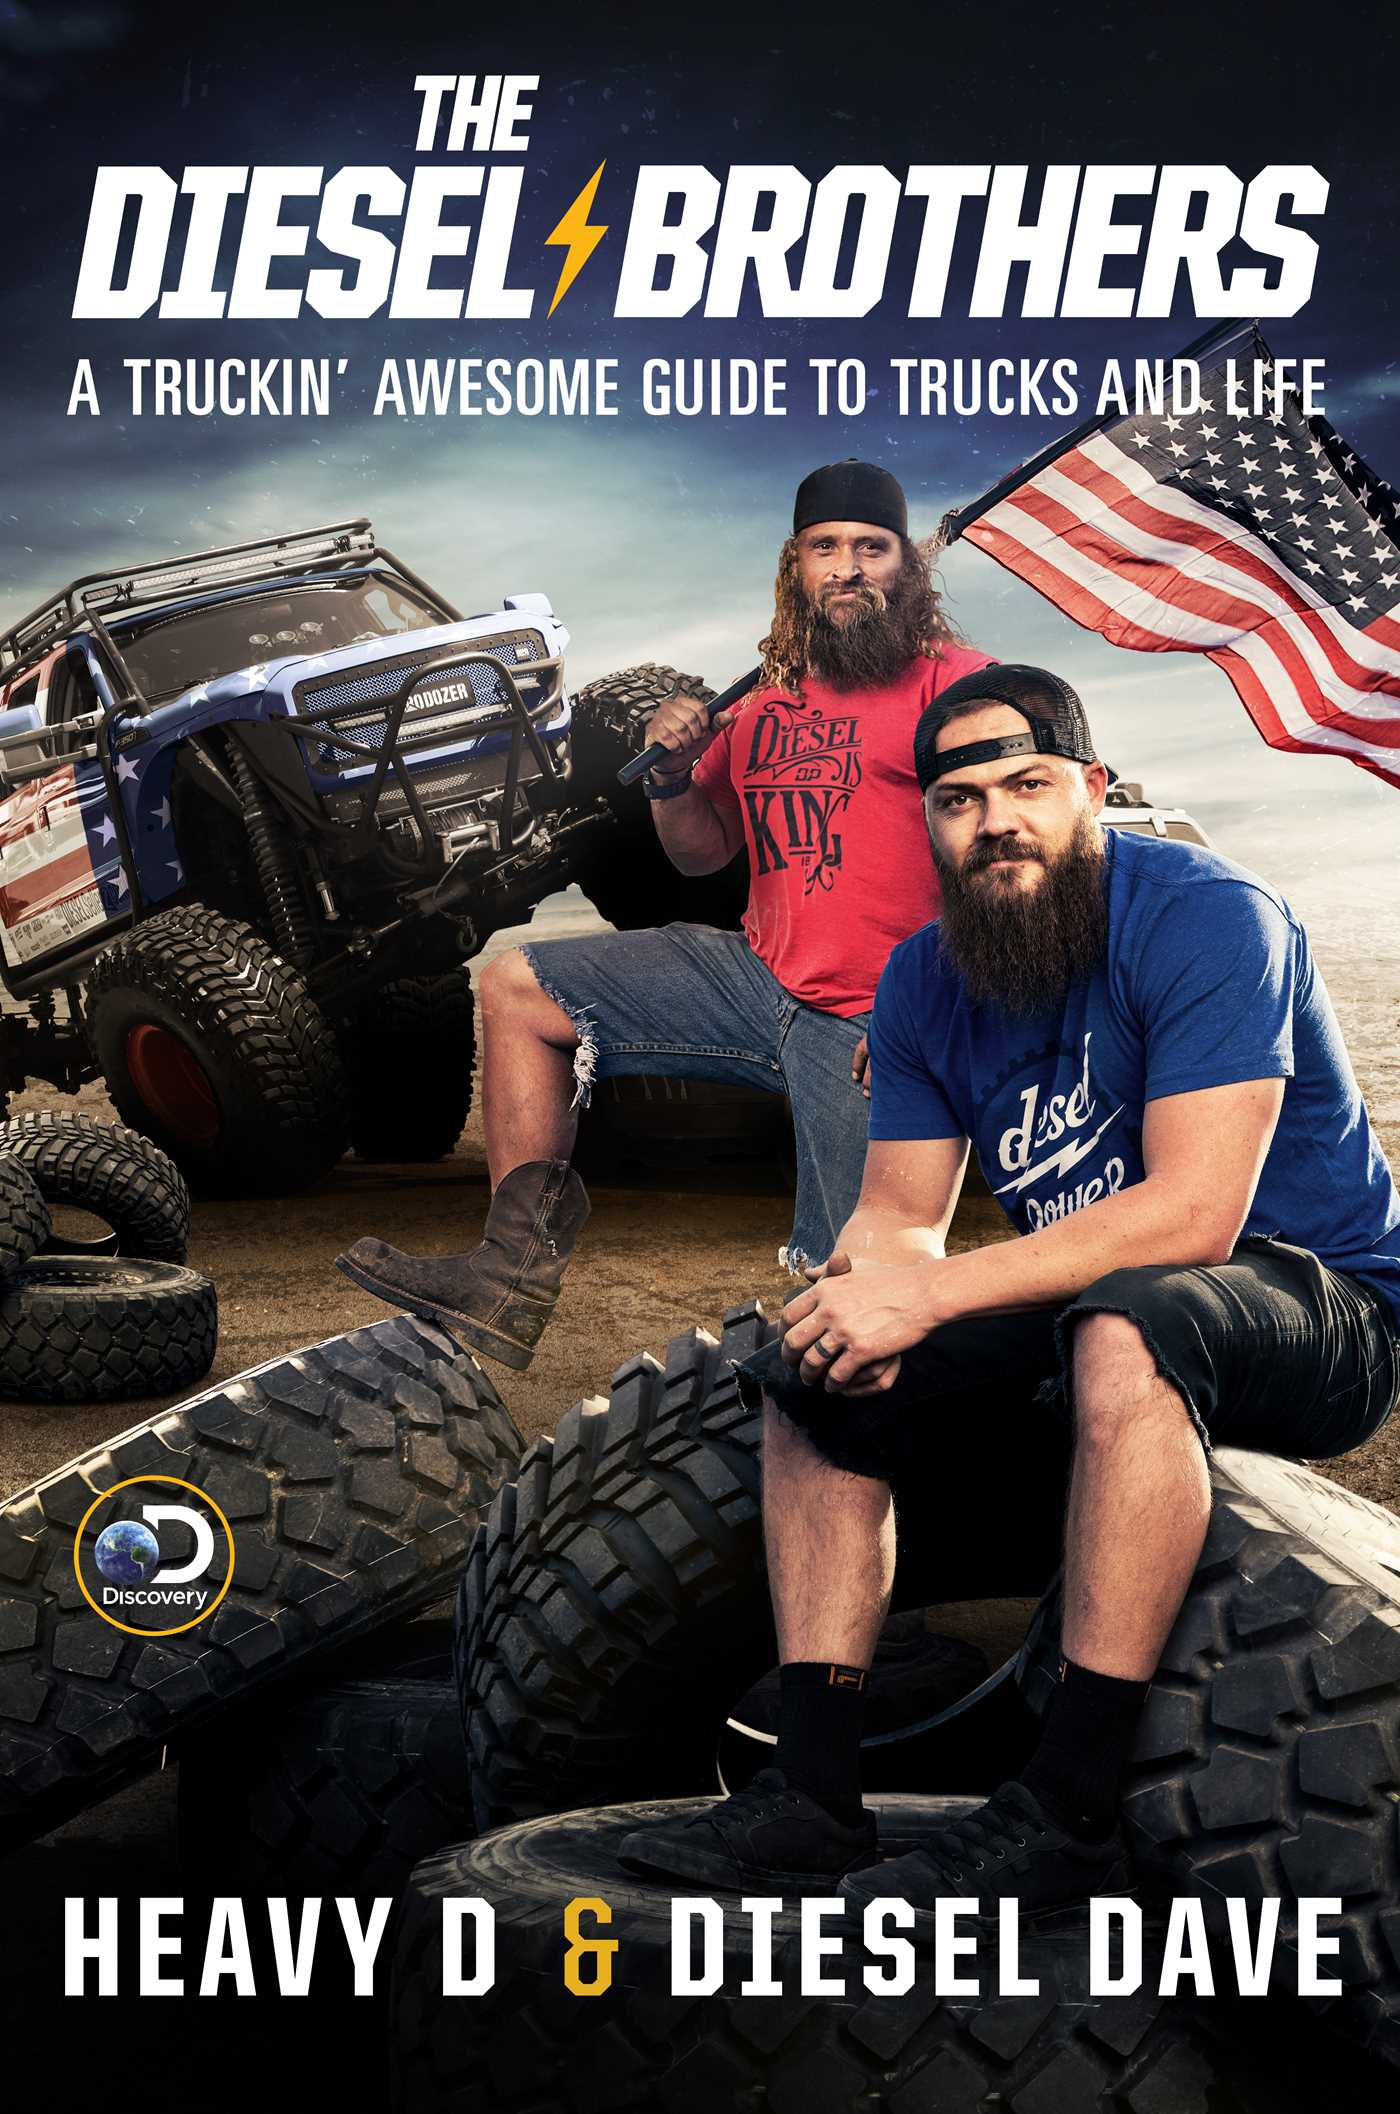 the diesel brothers a truckin awesome guide to trucks and life walmart com walmart com the diesel brothers a truckin awesome guide to trucks and life walmart com